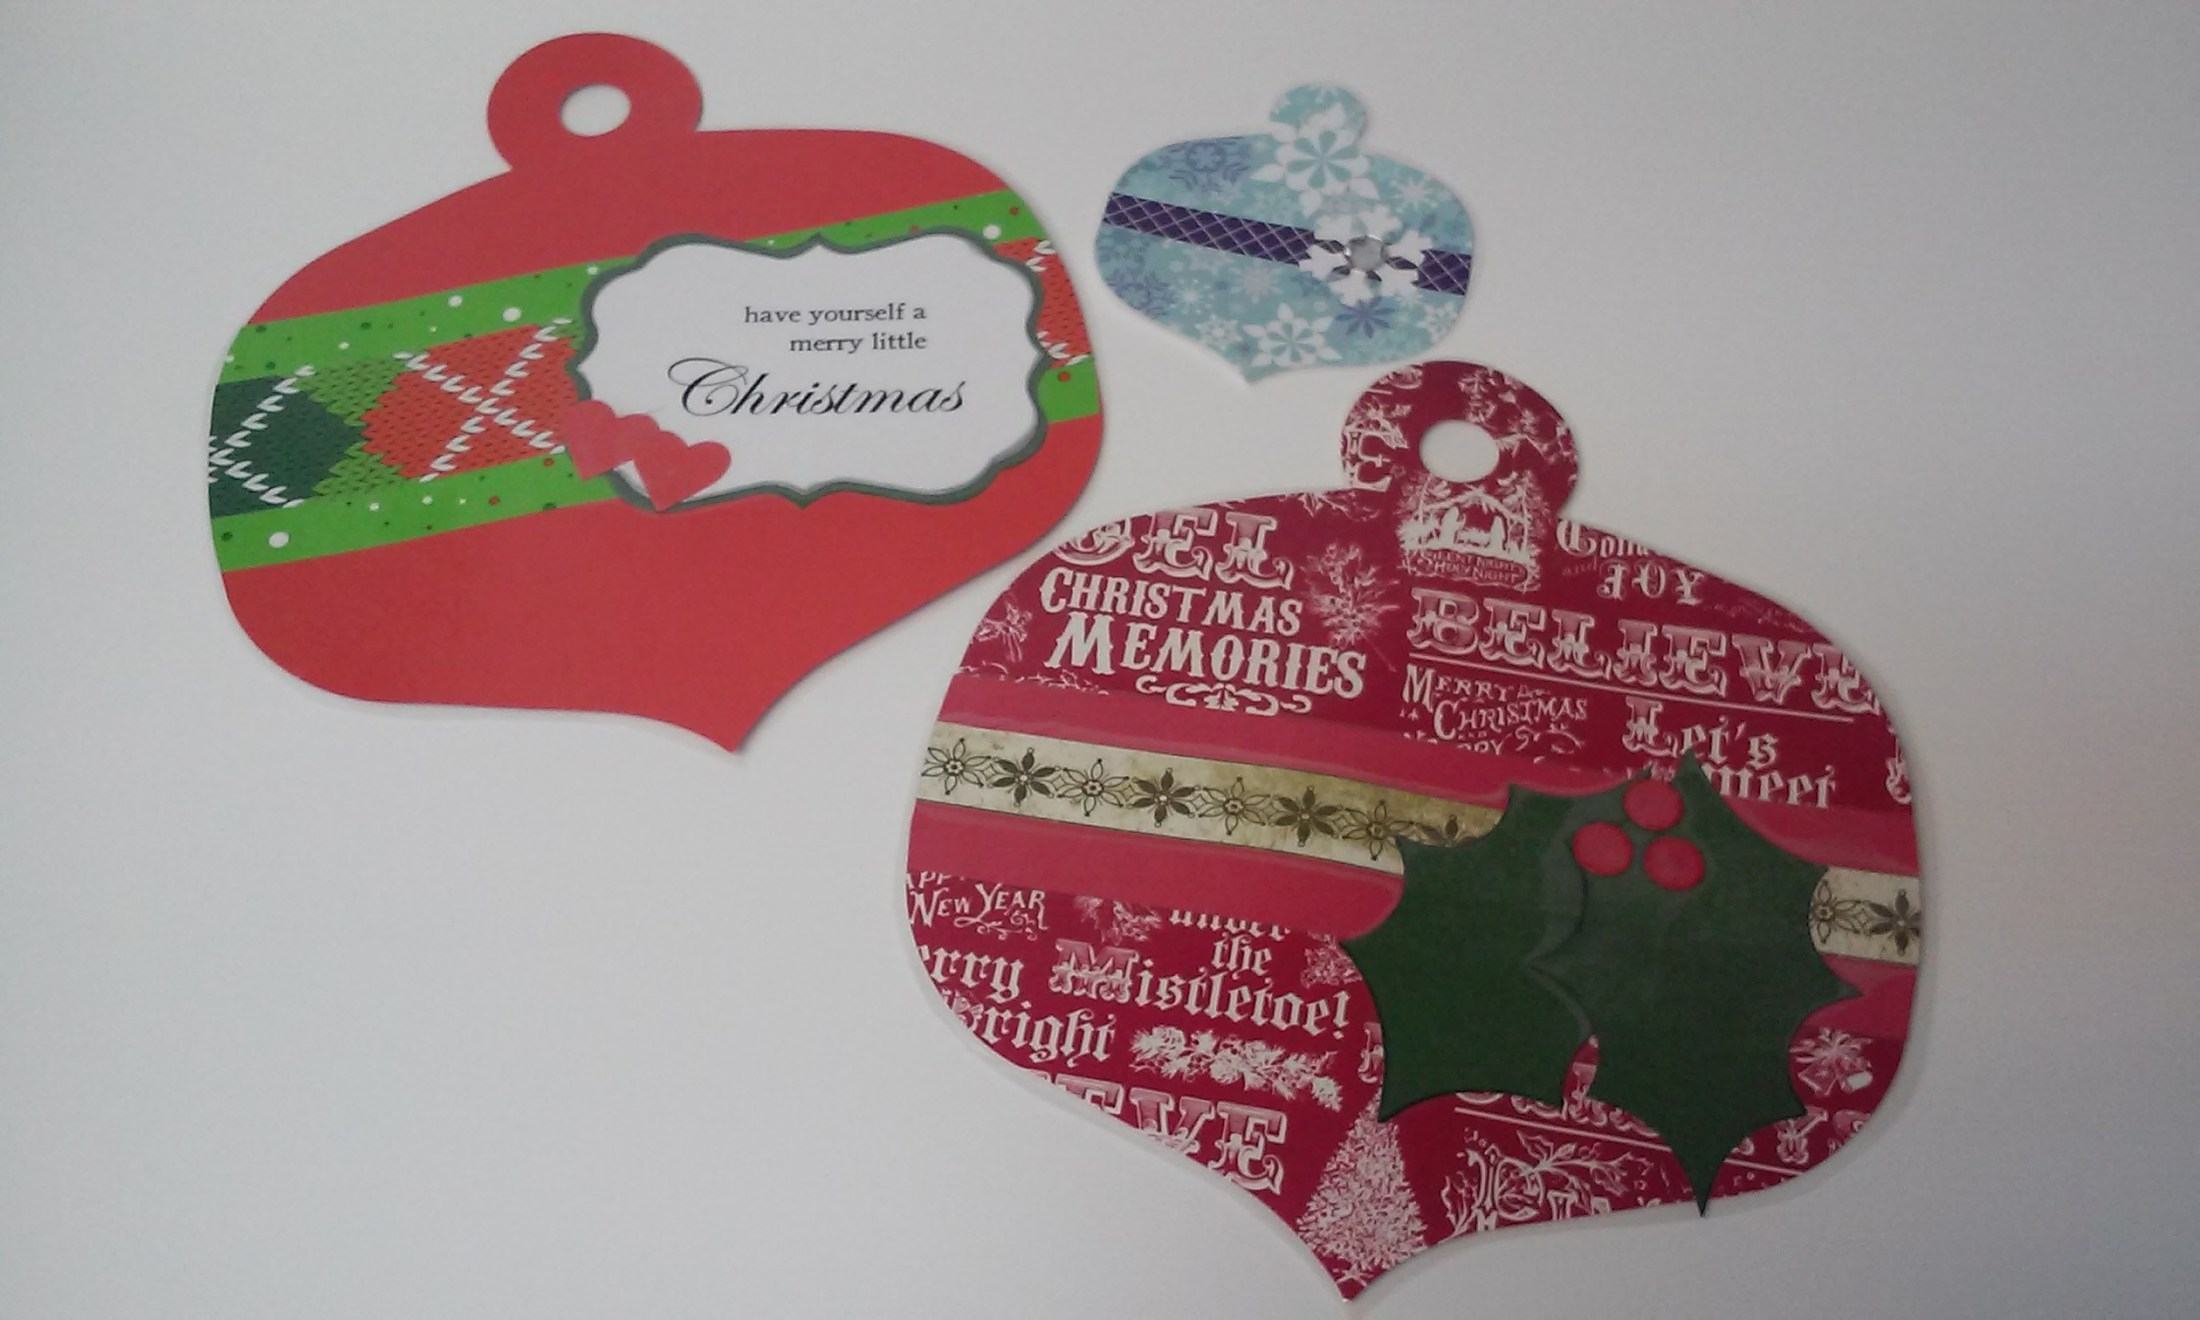 Make beautiful decorations for your class or other projects.